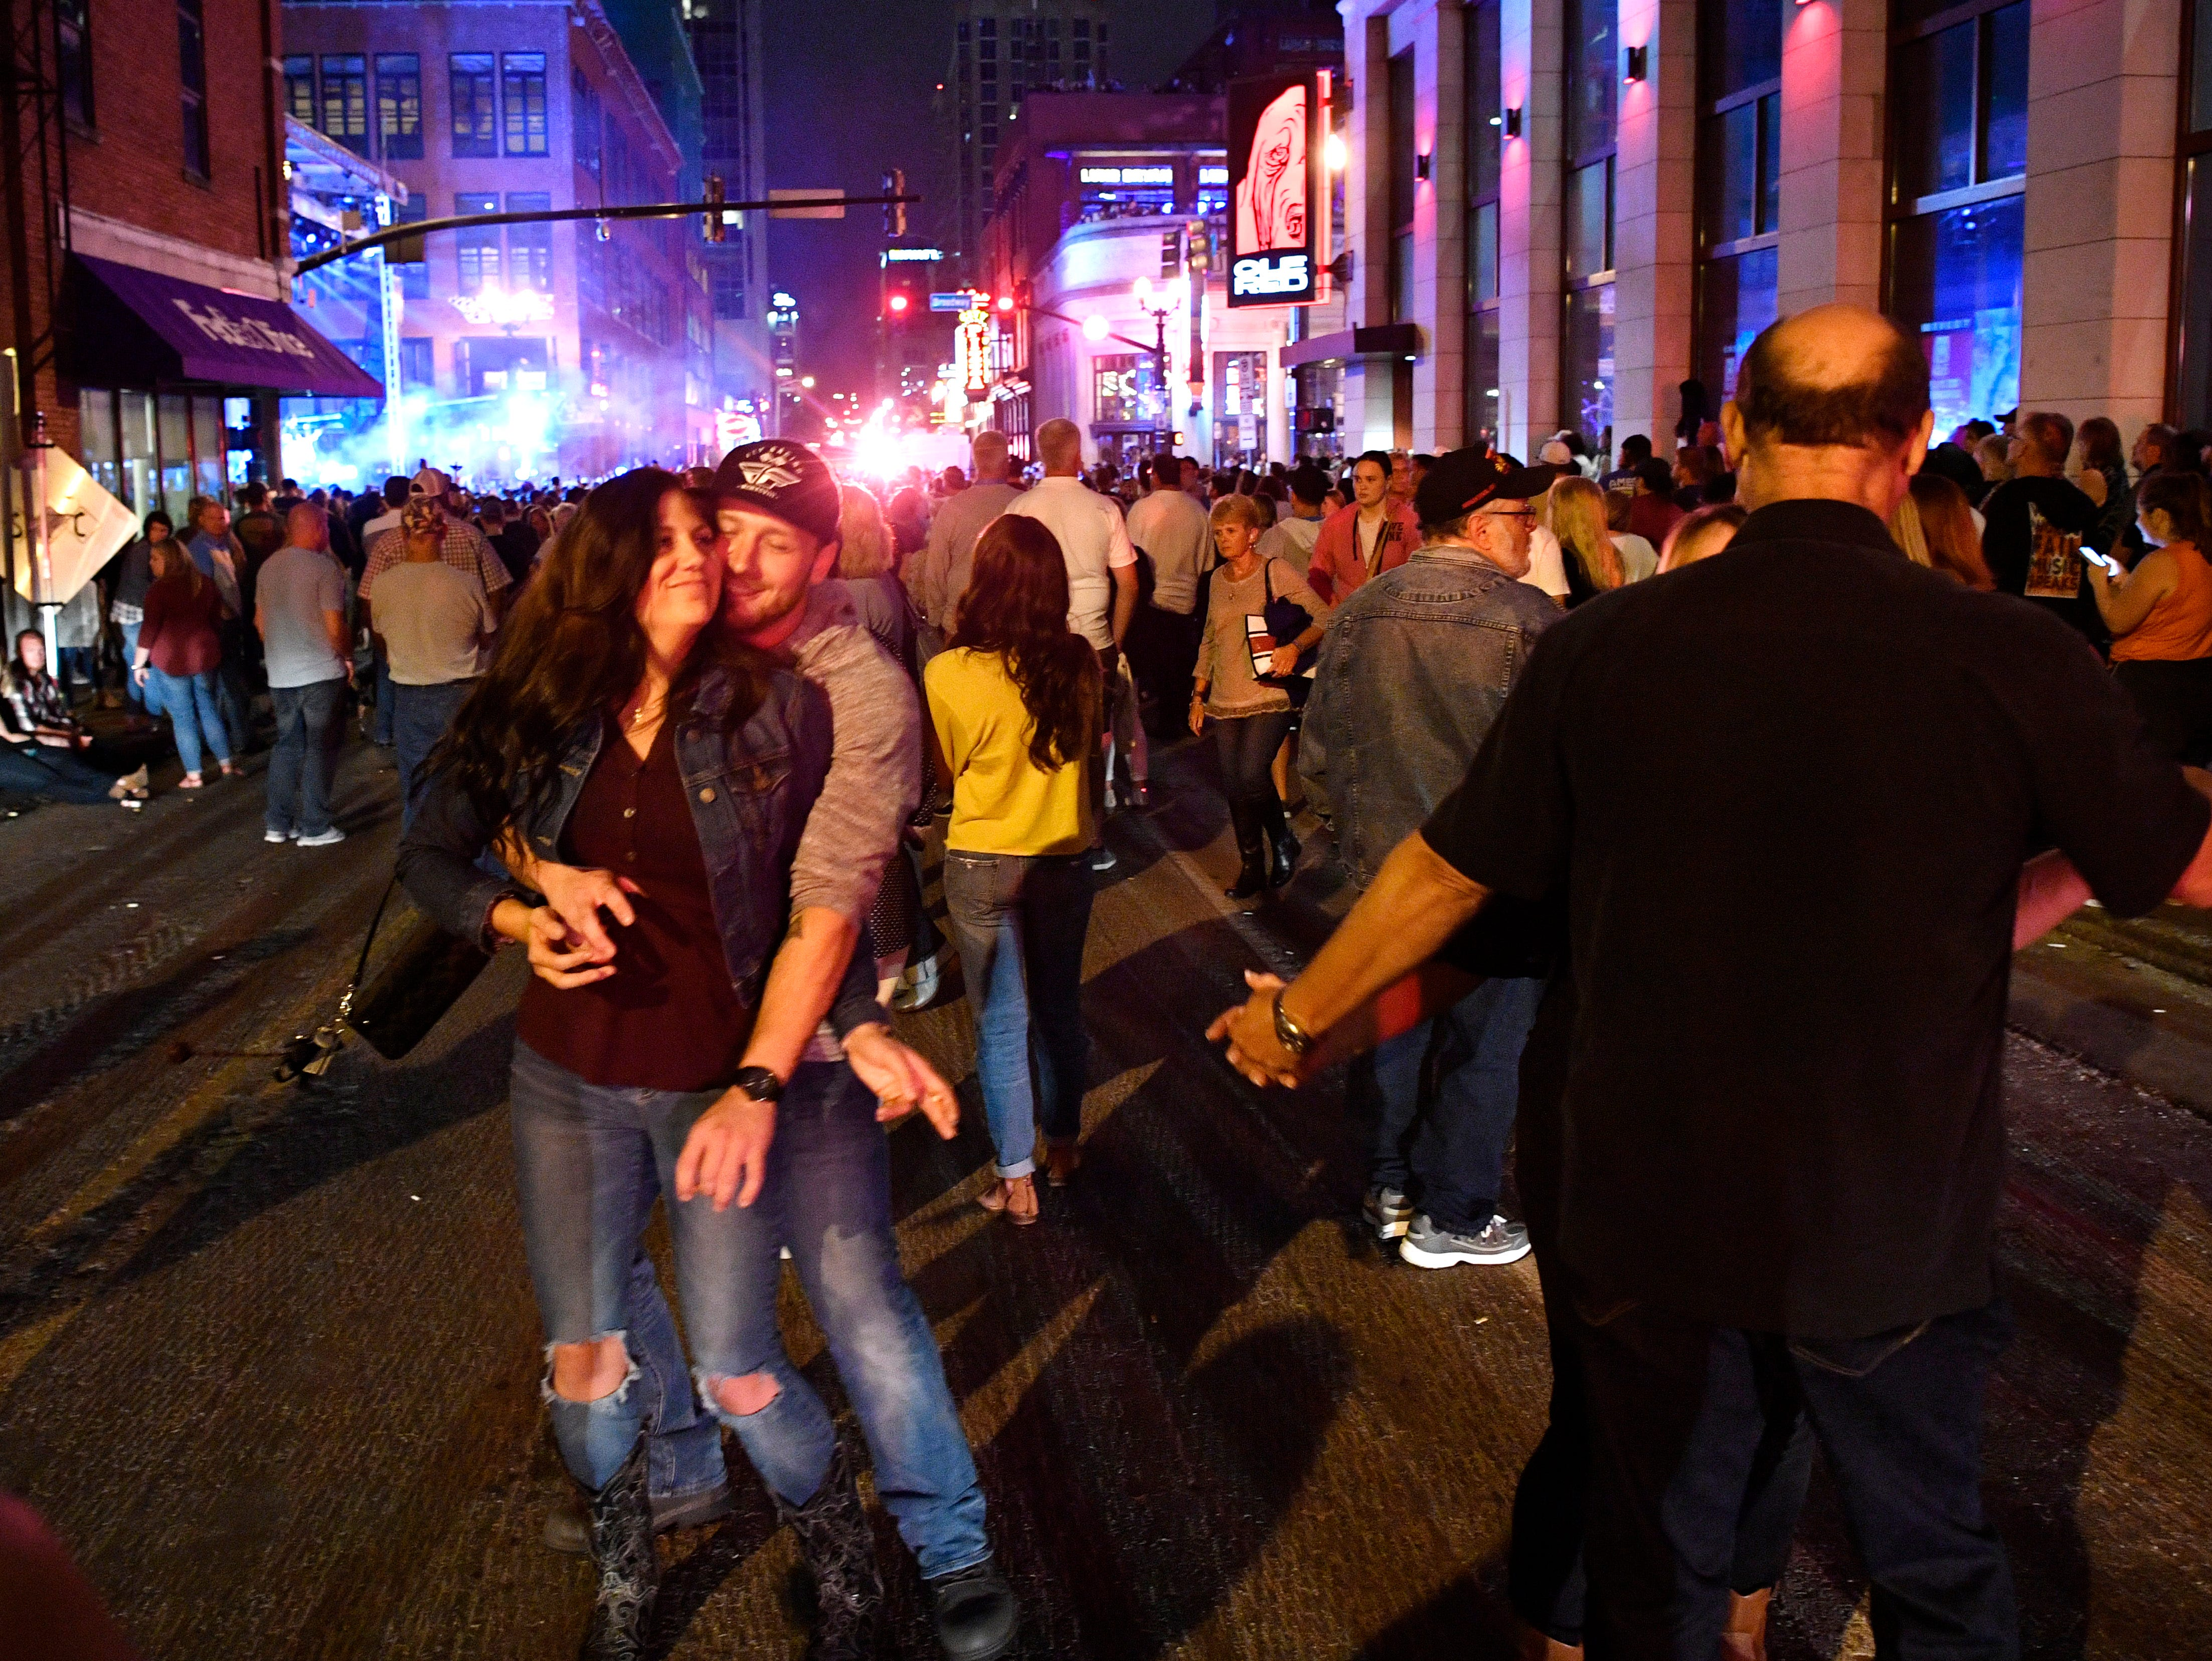 Fans dance to the music as Luke Bryan performs a concert for fans in front of his new bar Luke's 32 Bridge at 3rd and Broadway Monday Sept. 10, 2018, in Nashville, Tenn.